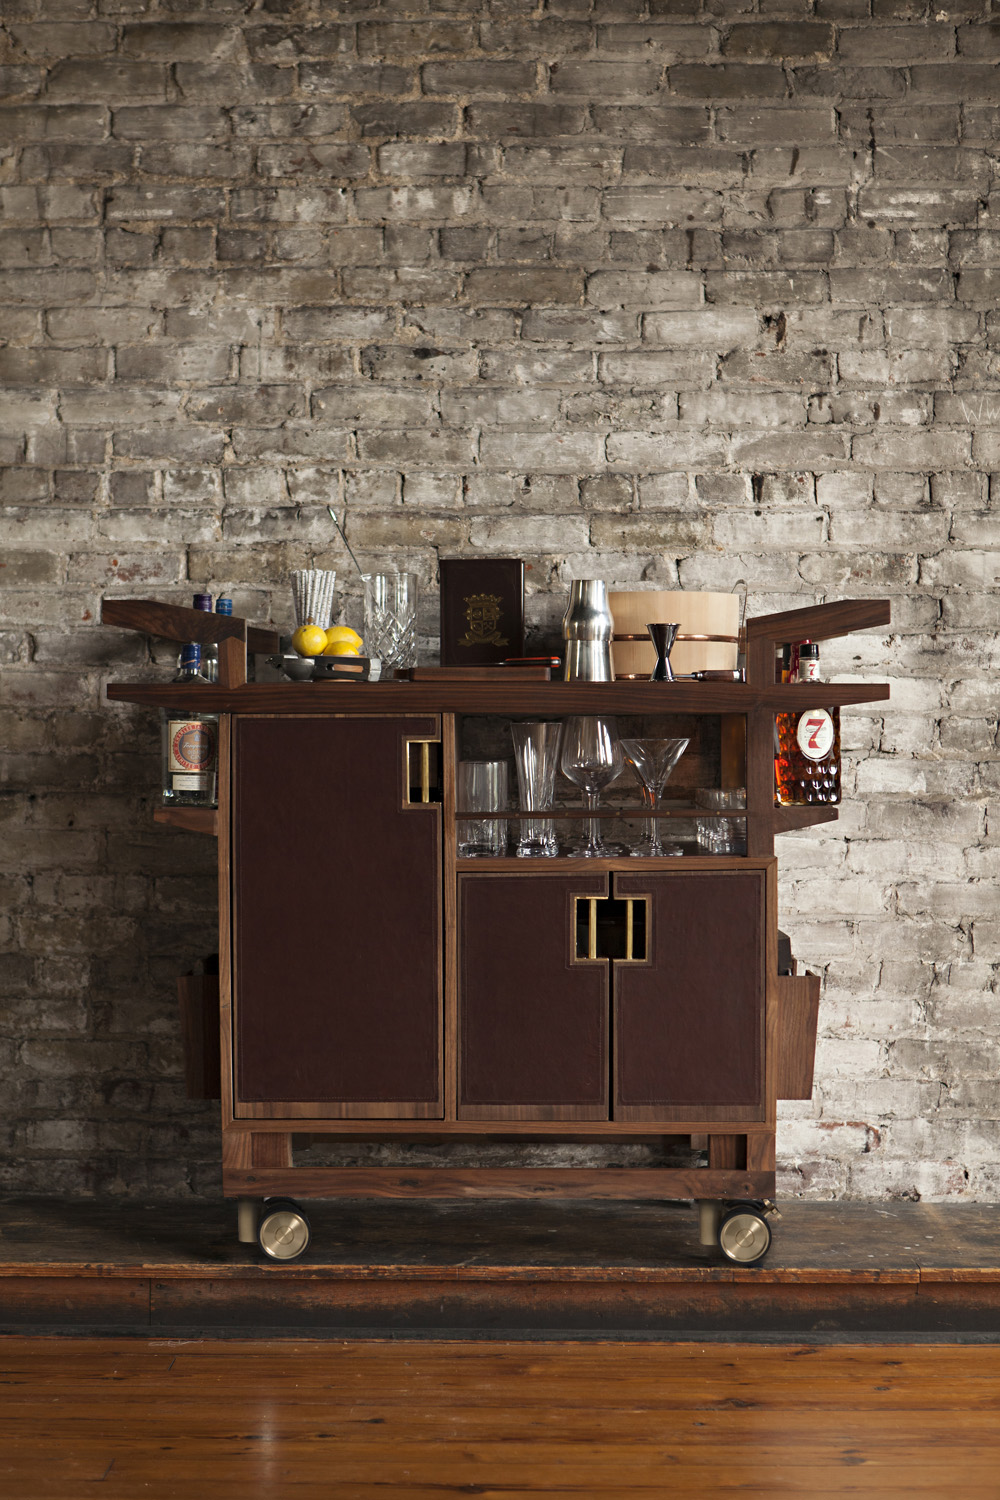 The Sidecar Bar Cart by Moore & Giles and Jim Meehan